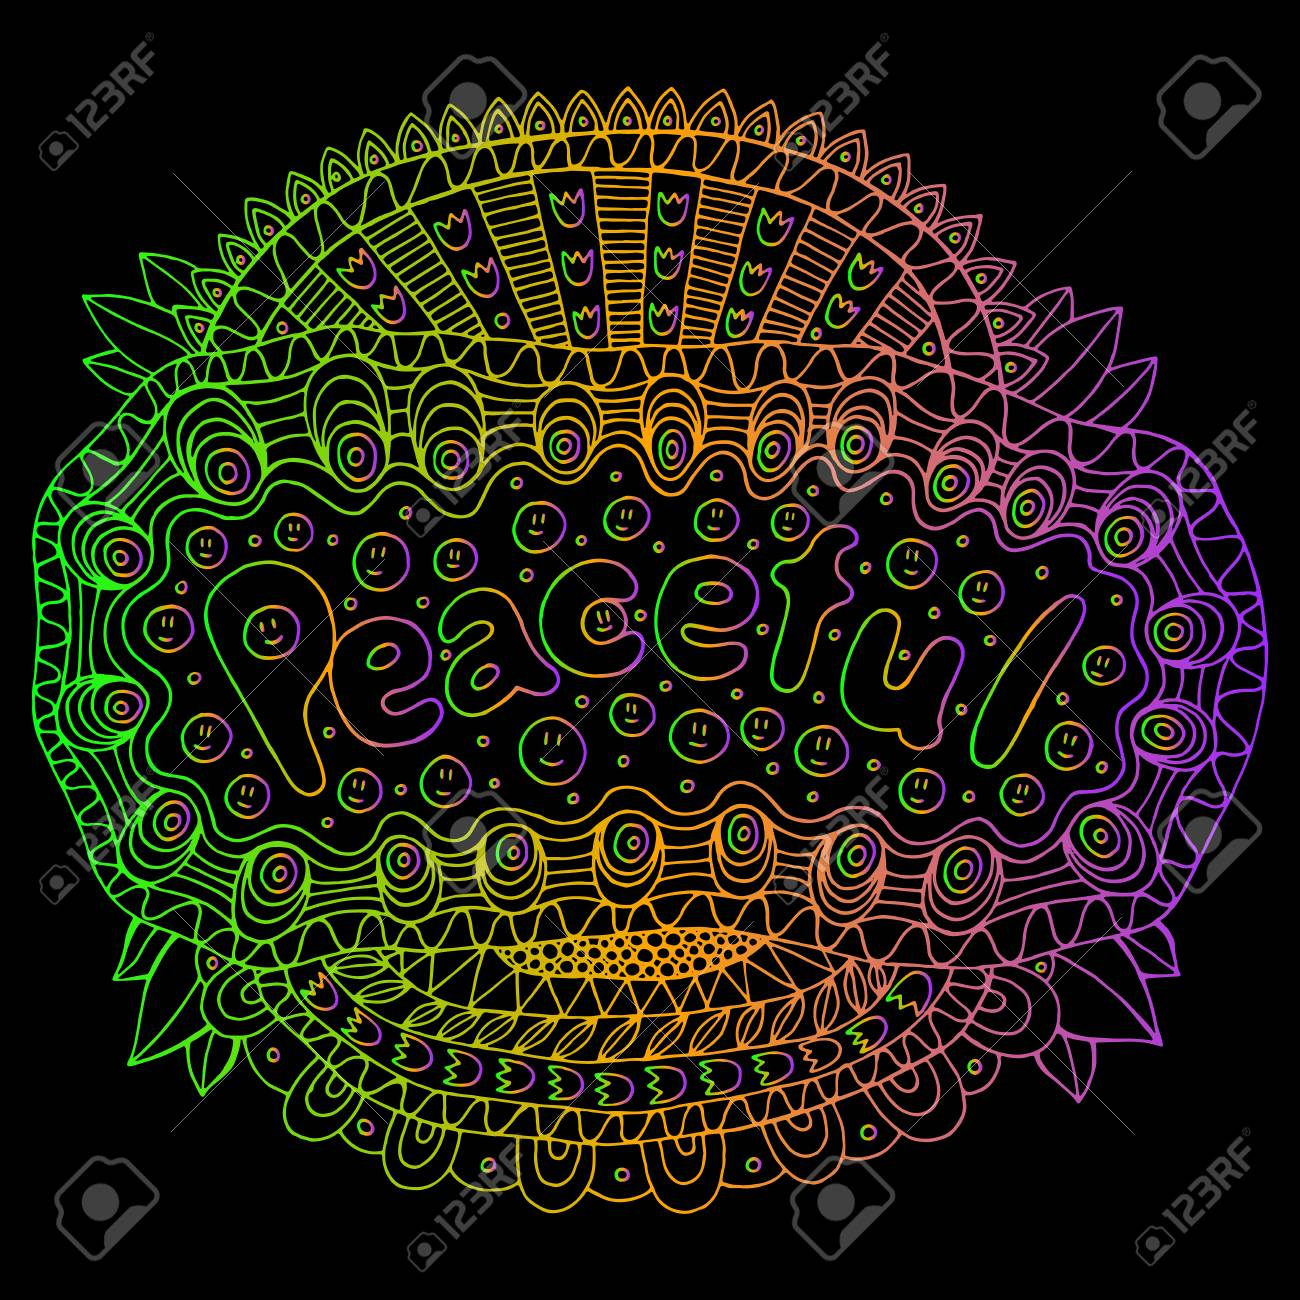 Cartoon Art With Mandala And Peaceful Gradient Word Doodle Lettering